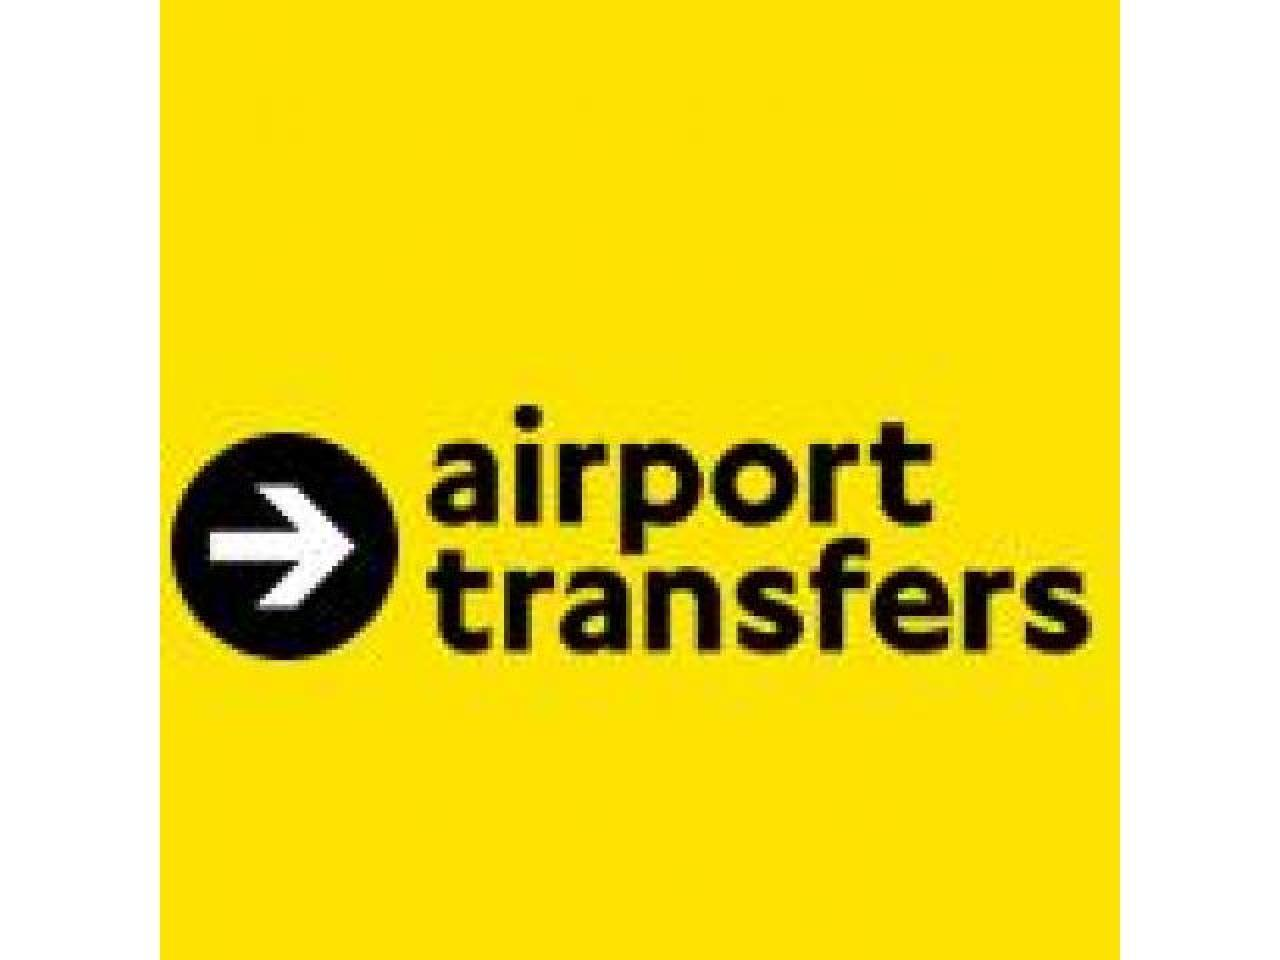 London airport taxi and transfers services at fixed price - 1